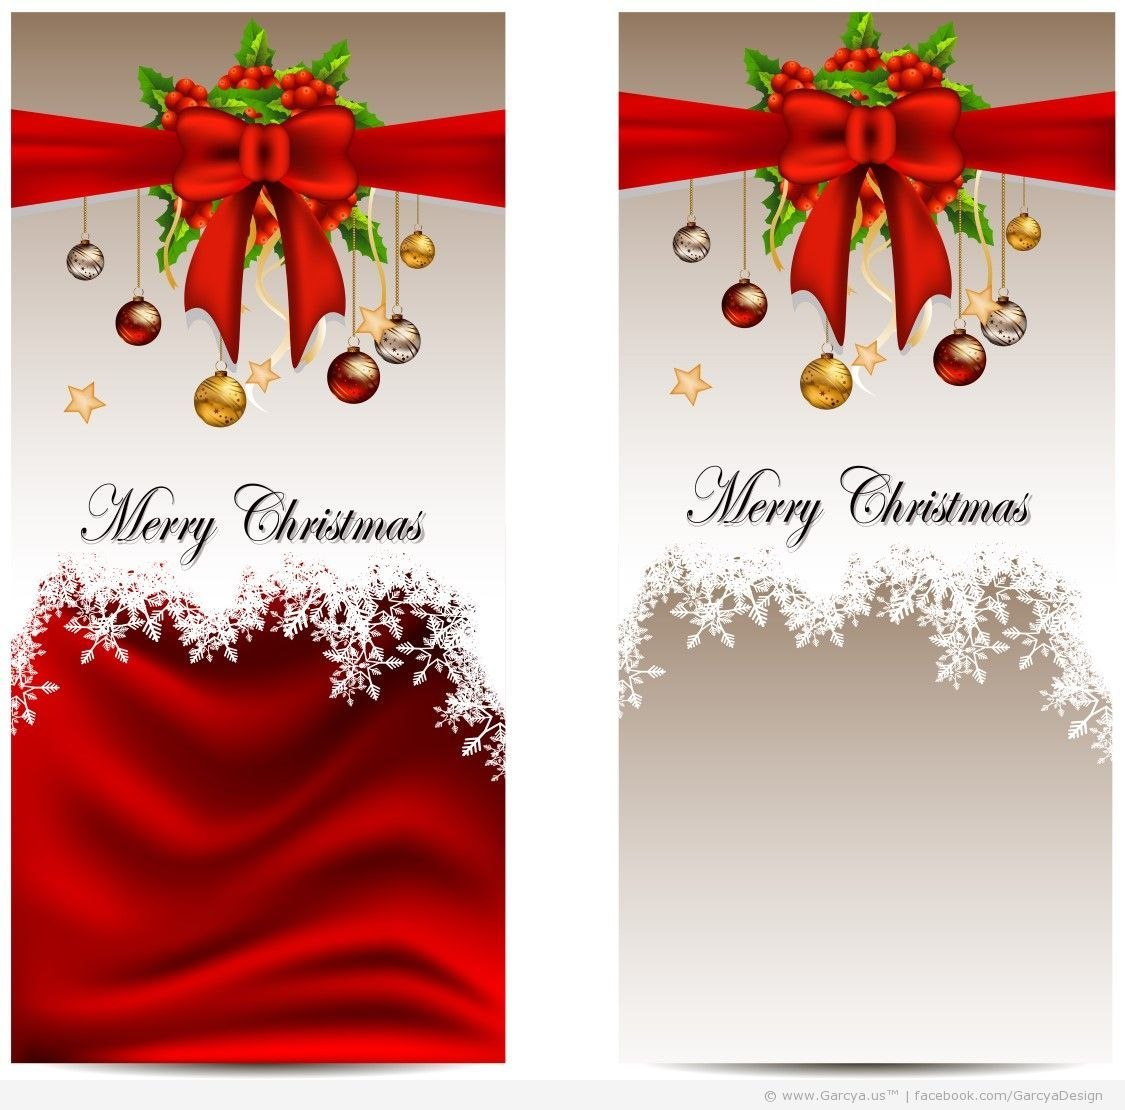 Christmas Cards Templates Free Downloads Template Unusual Ideas Intended For Christmas Photo Cards Templates Free Downloads